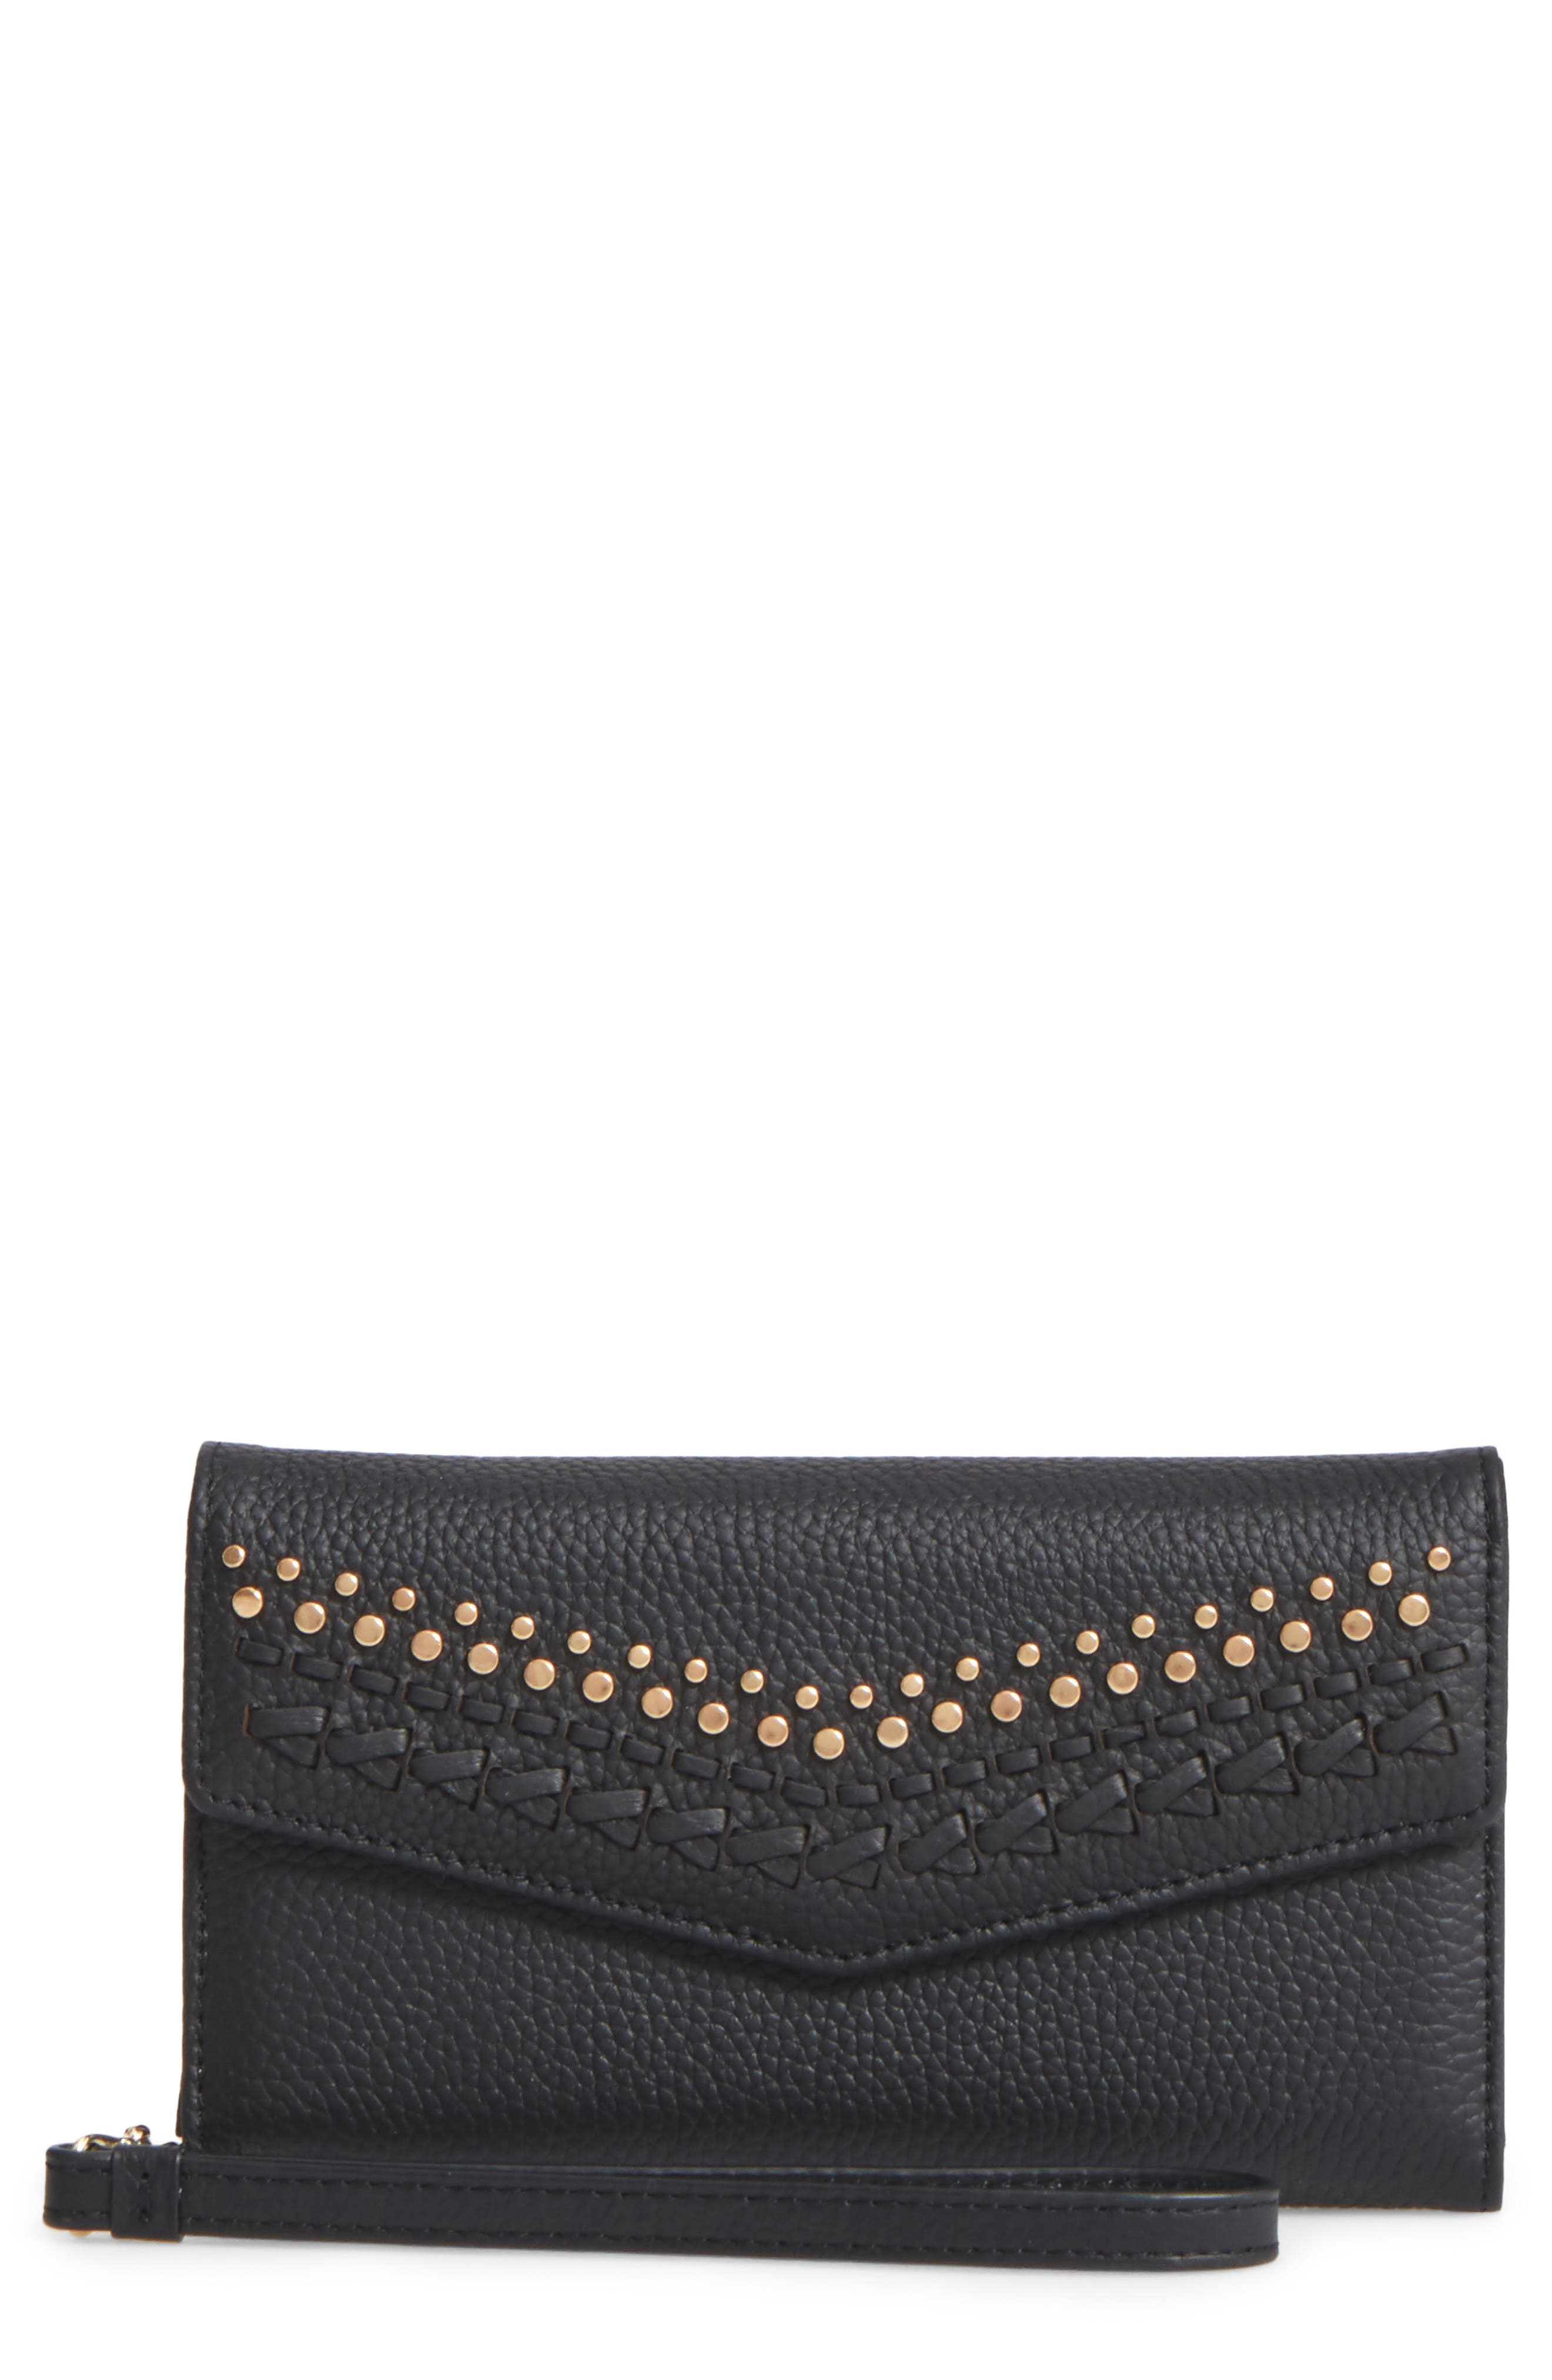 REBECCA MINKOFF Leather Whipstitch iPhone7 Wristlet